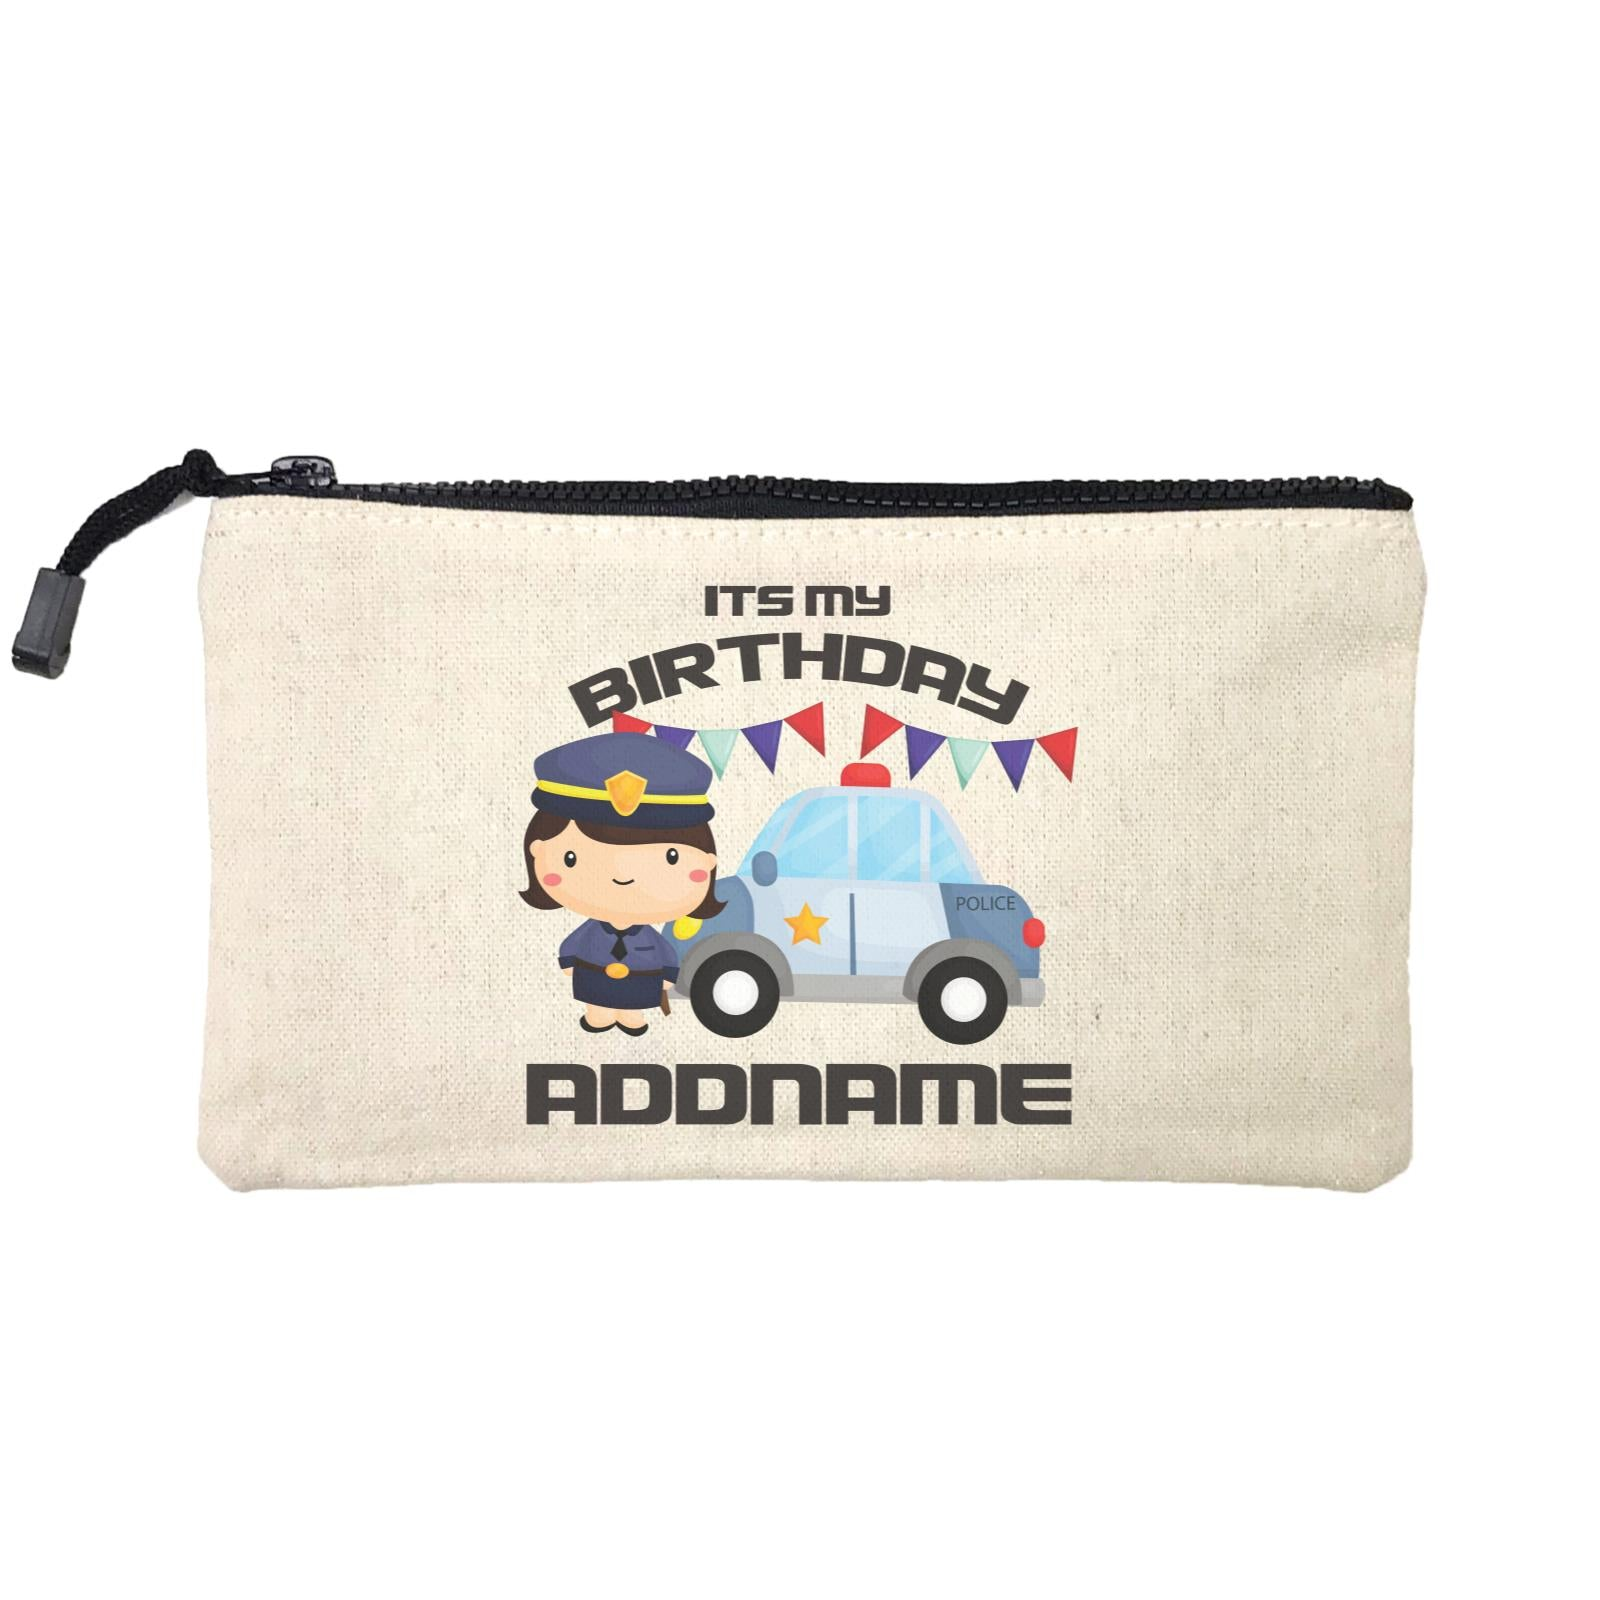 Birthday Police Officer Girl In Suit With Police Car Its My Birthday Addname Mini Accessories Stationery Pouch